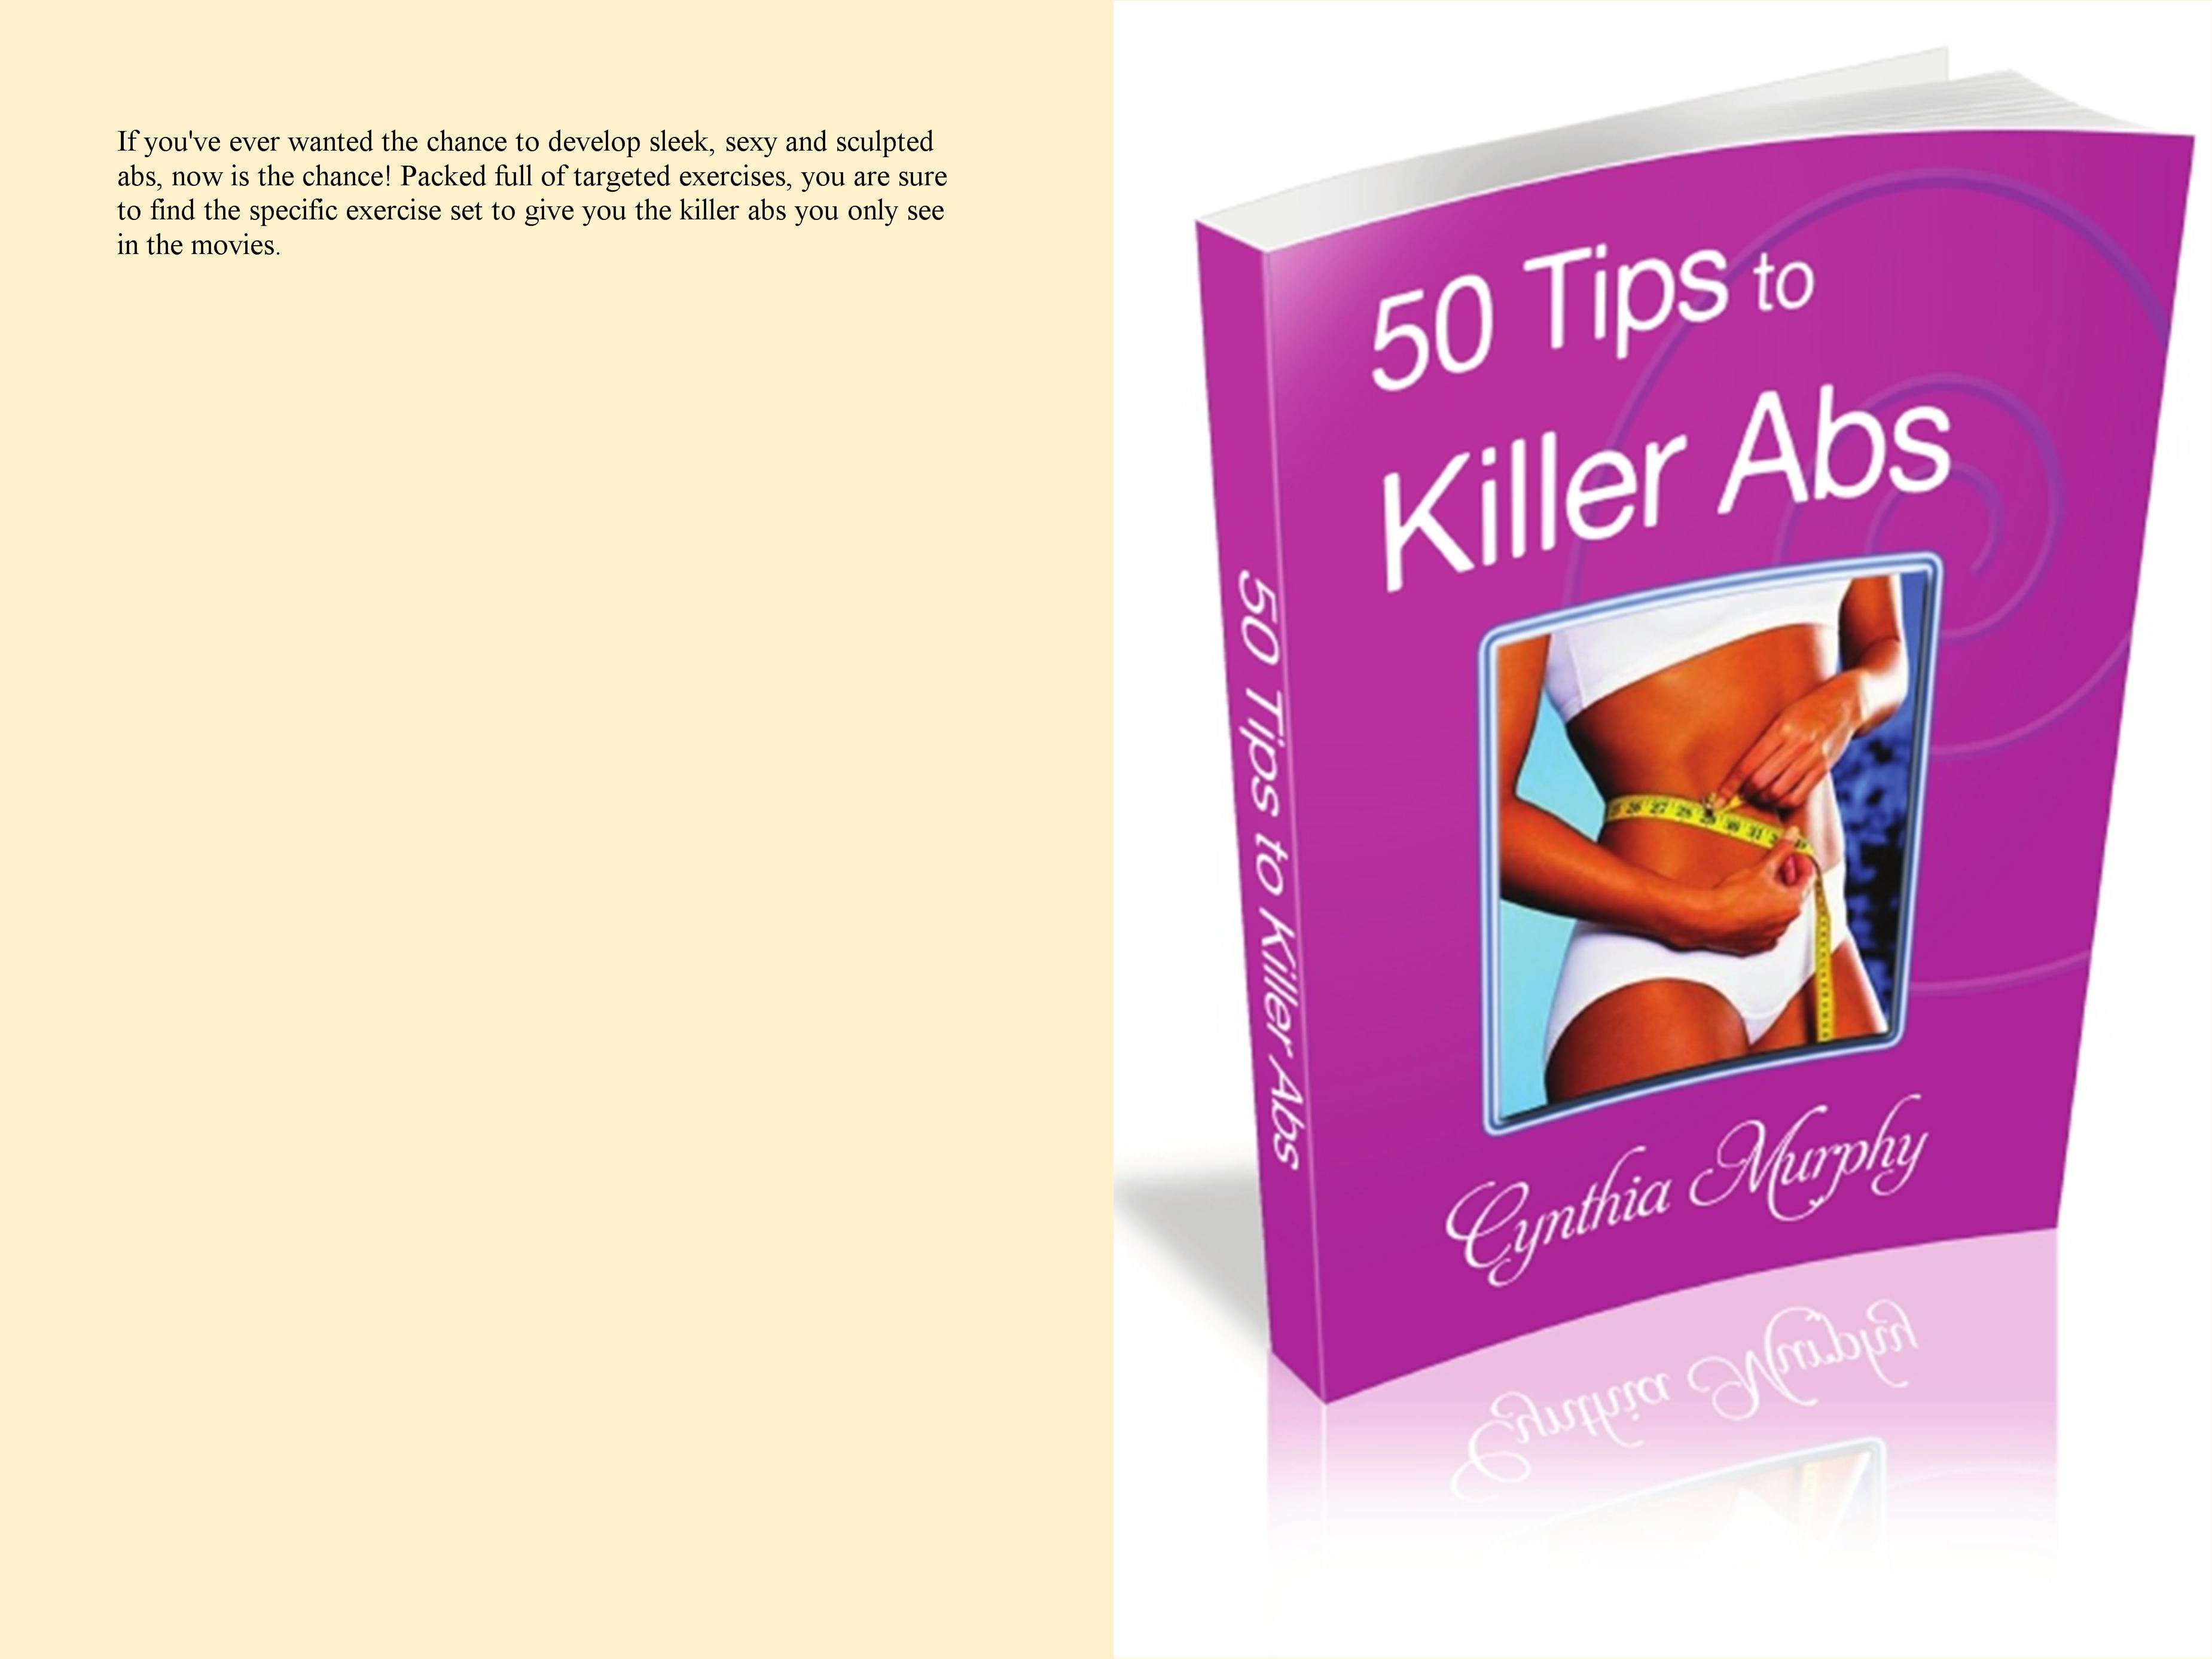 50 Tips to Killer Abs cover image